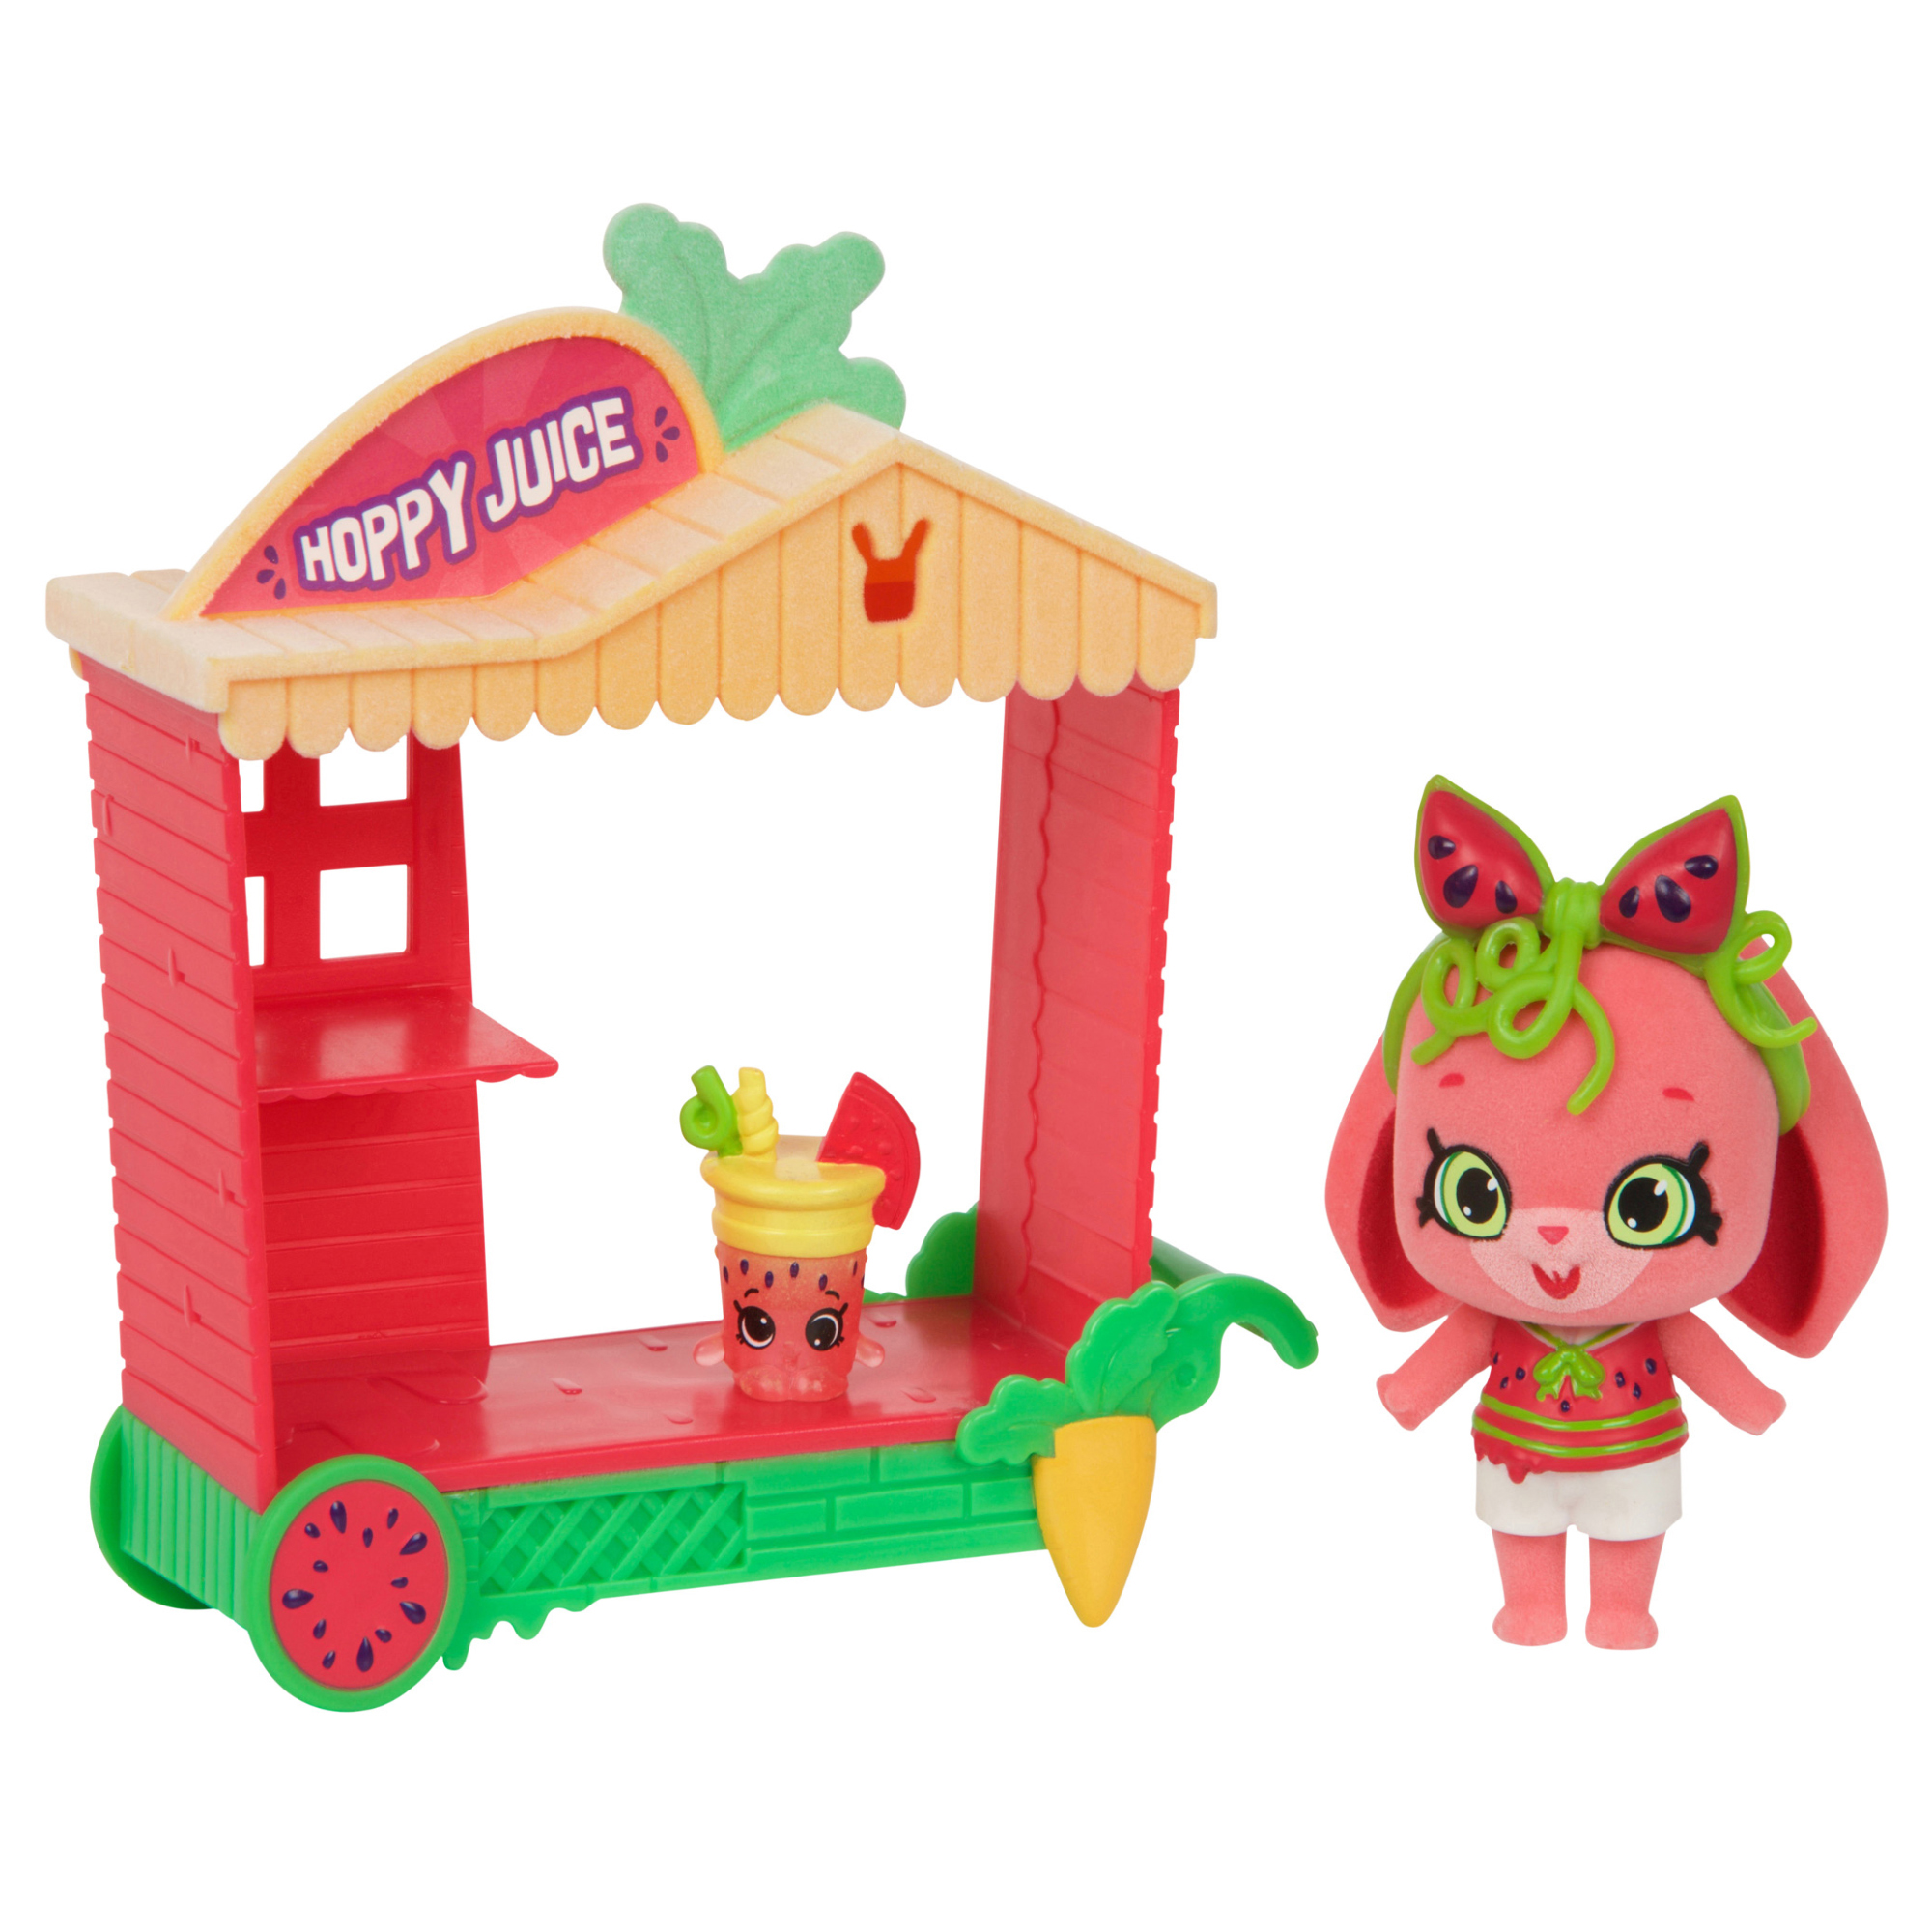 License 2 Play - Shopkins Shoppets Series 9, Bunny Juice Truck